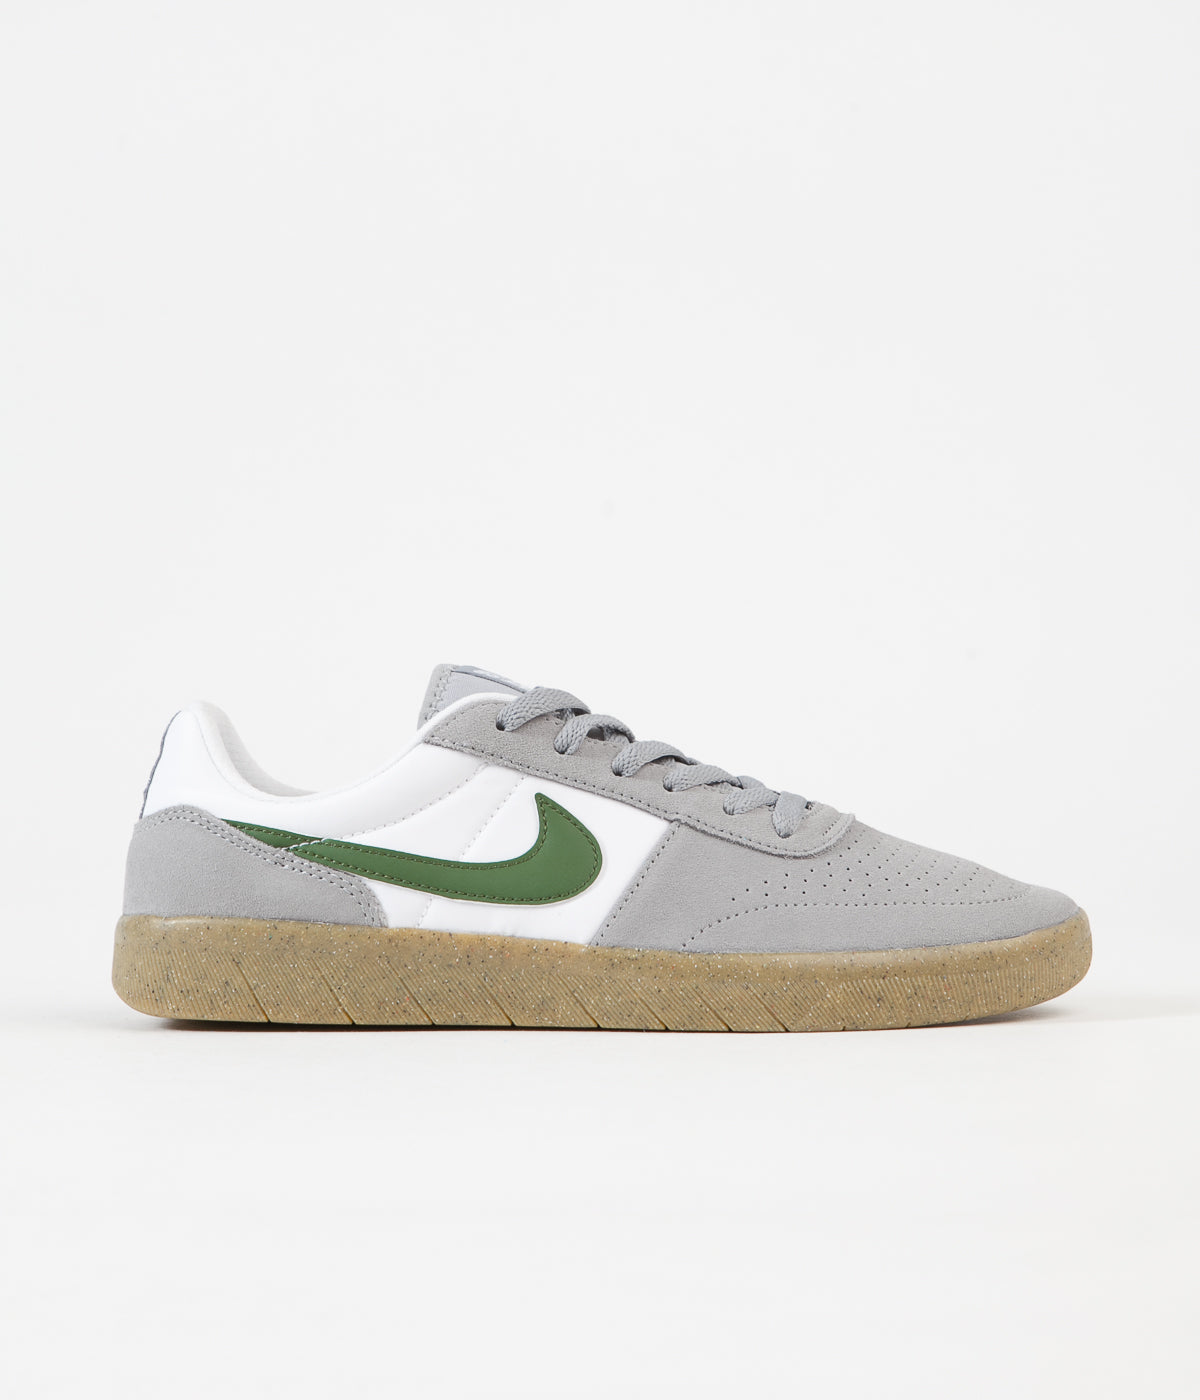 Nike SB Team Classic Shoes - Particle Grey / Forest Green ...